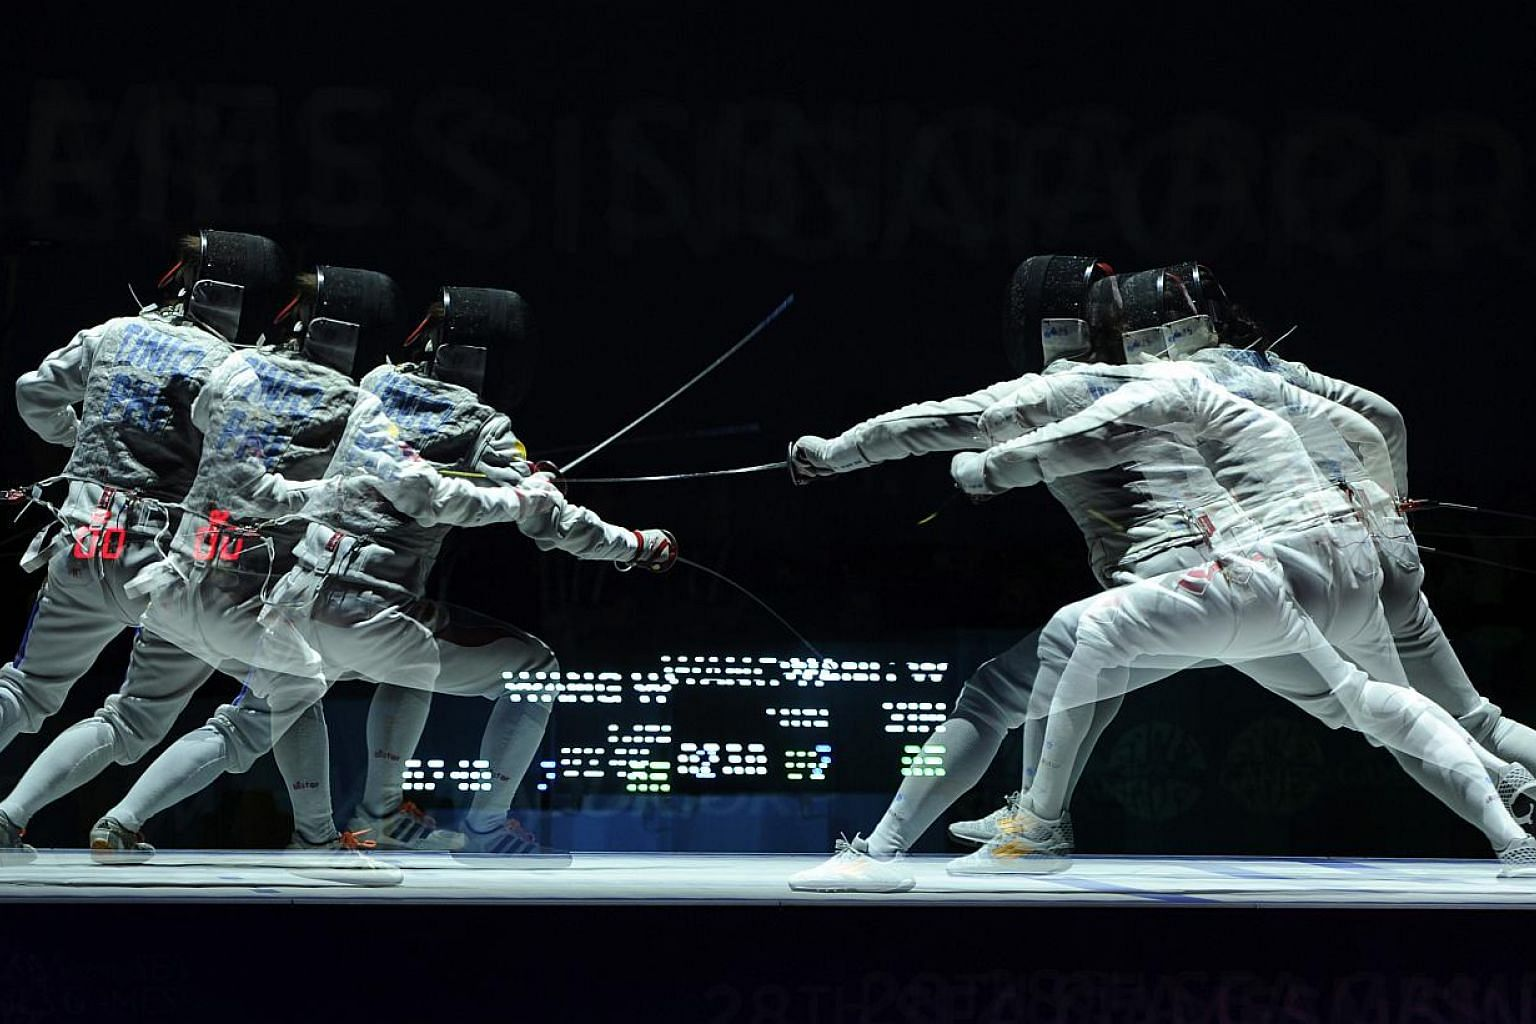 Singapore's Wang Wenying (right) beats Philippines's Justine Gail Tinio (left) 15-7 during the SEA Games fencing Women's individual foil finals held at the OCBC Arena Hall 2 on June 3, 2015. -- PHOTO: REUTERS